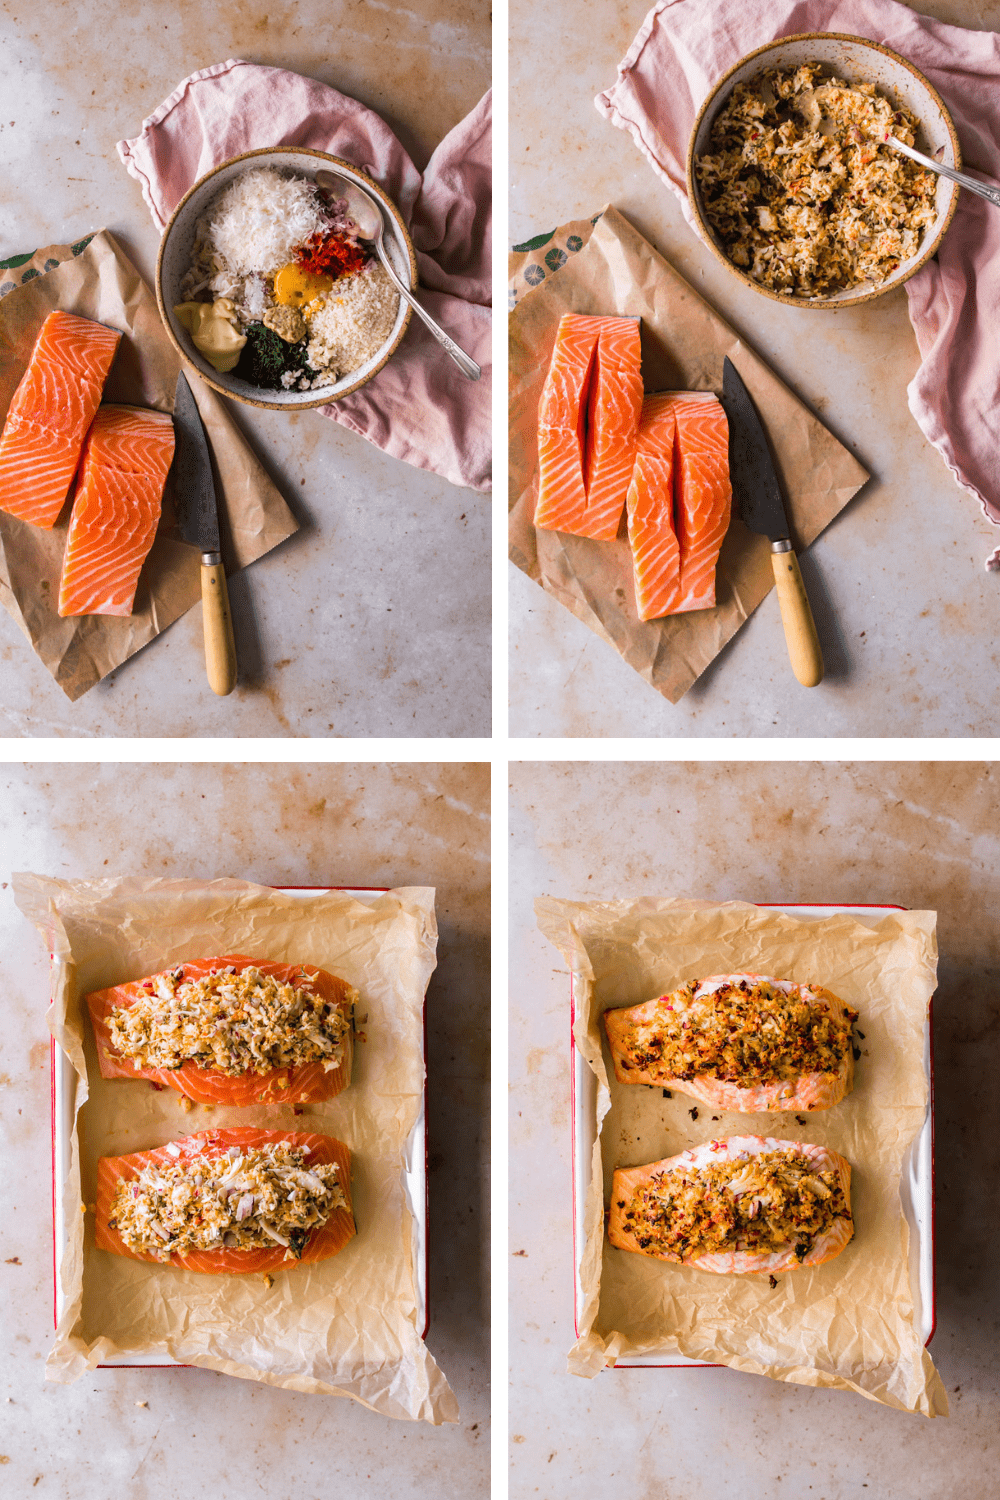 4 images showing how to stuff and bake salmon